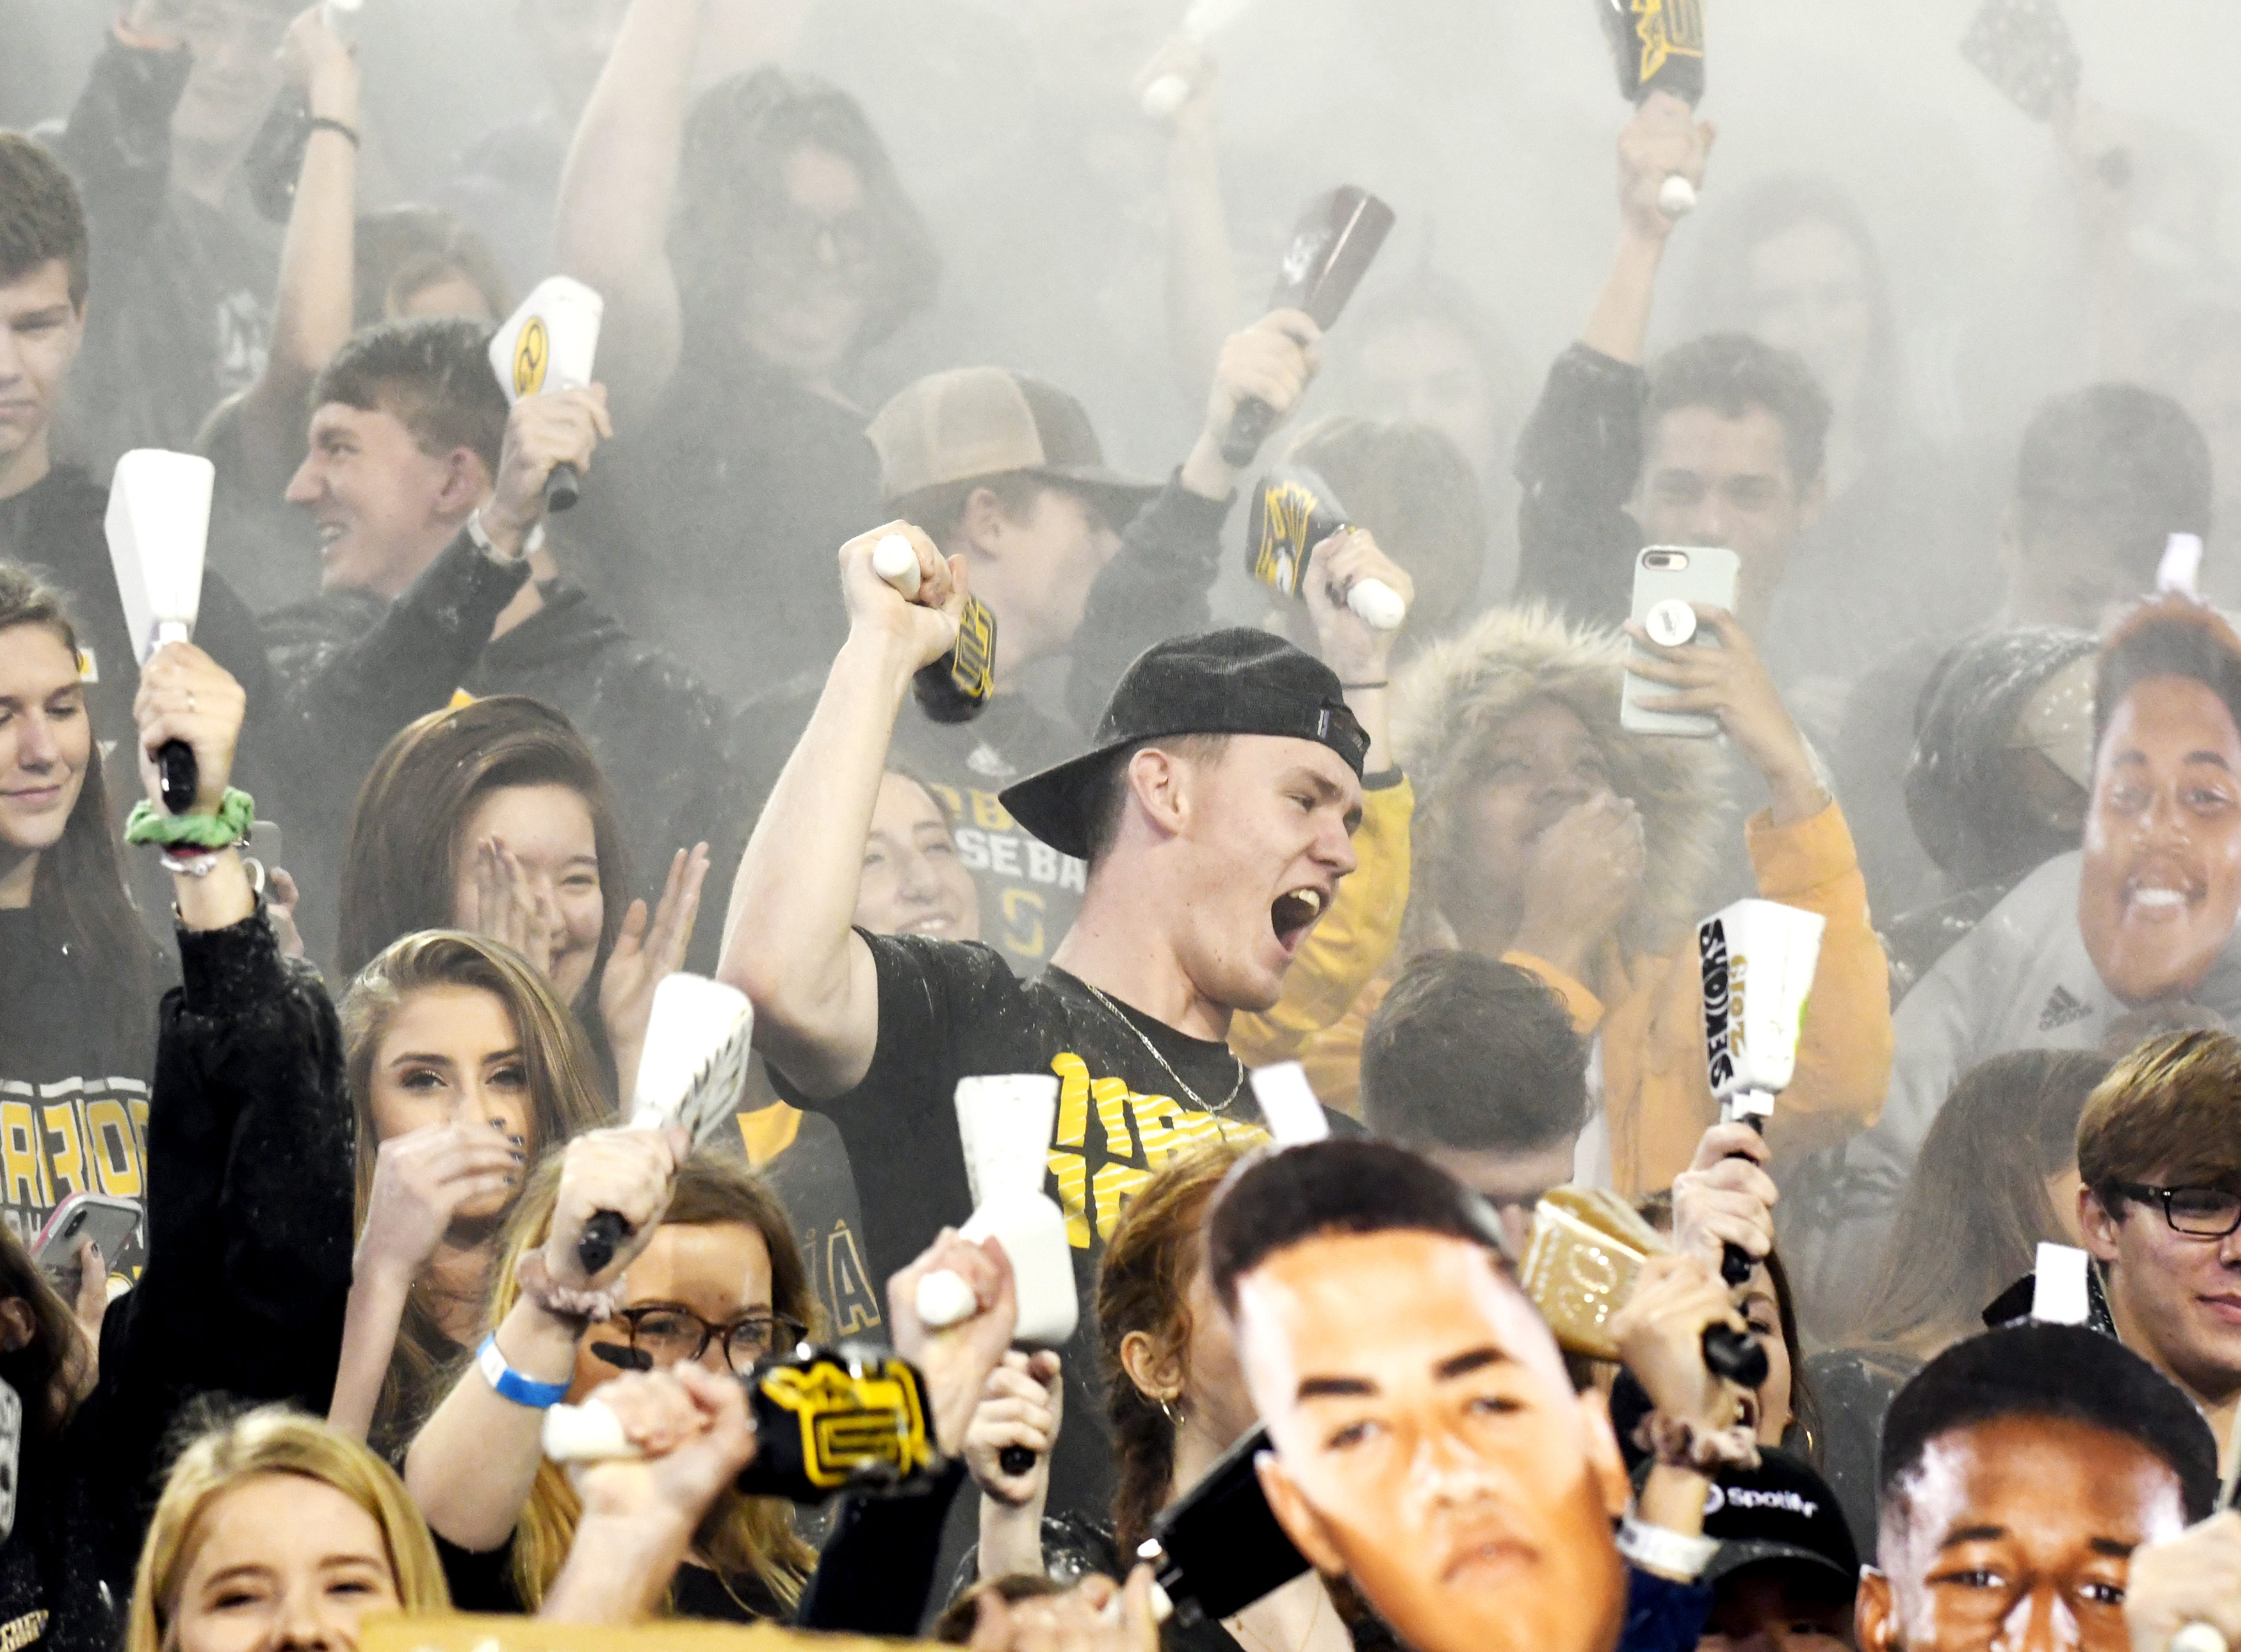 Oak Grove fans celebrate to start of the 6A state championship game against Horn Lake at M.M. Roberts Stadium in Hattiesburg on Friday, November 30, 2018.